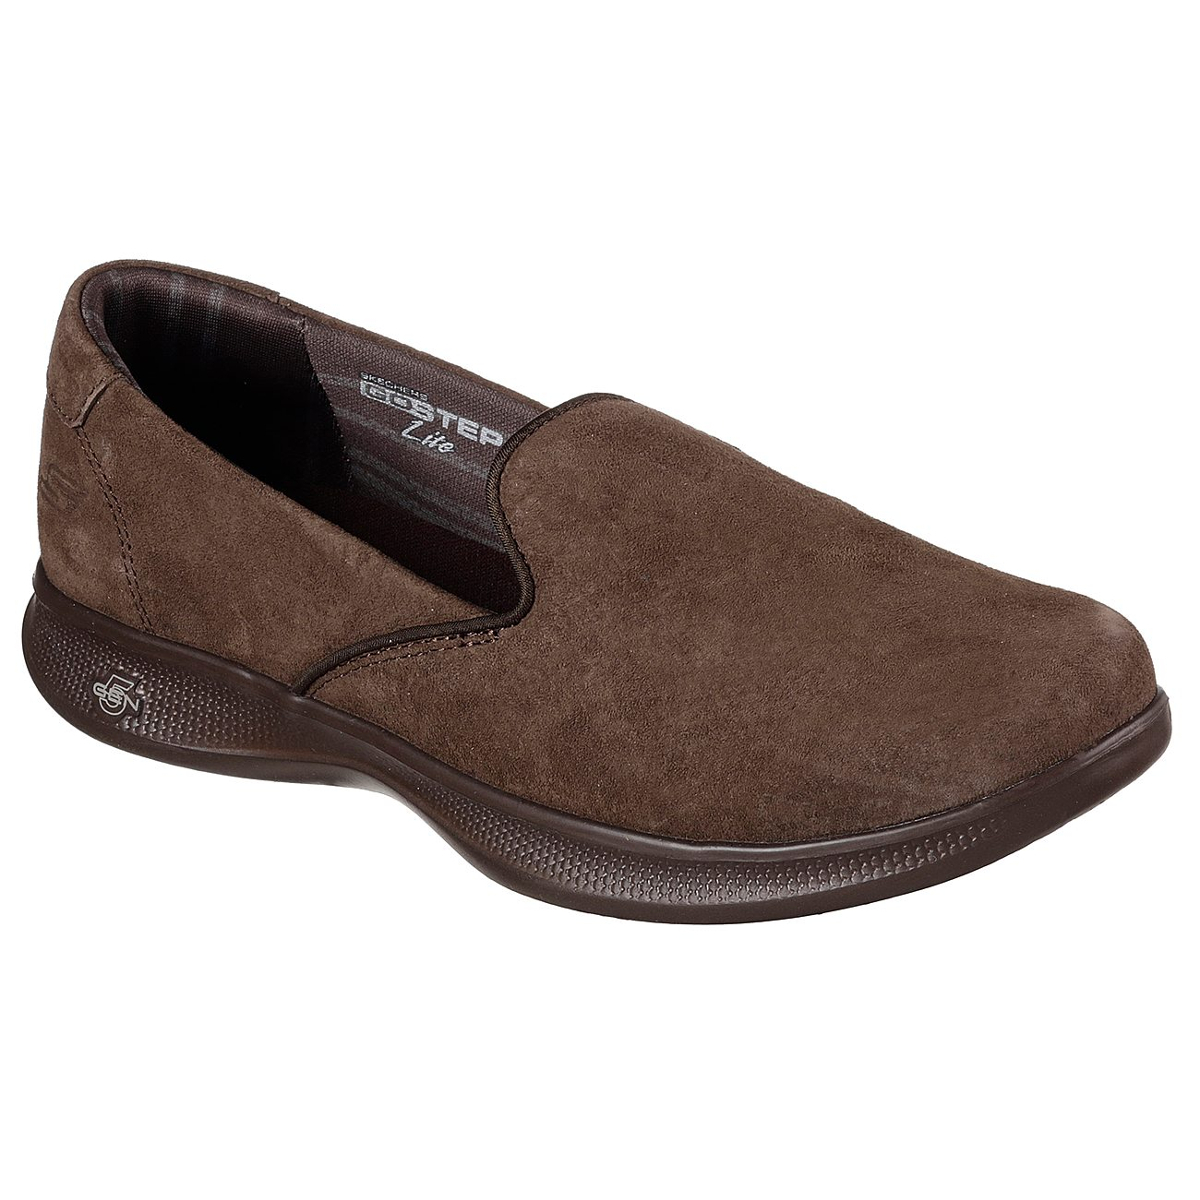 Skechers Women's Skechers Go Step Lite -  Indulge Casual Slip-On Shoes - Brown, 8